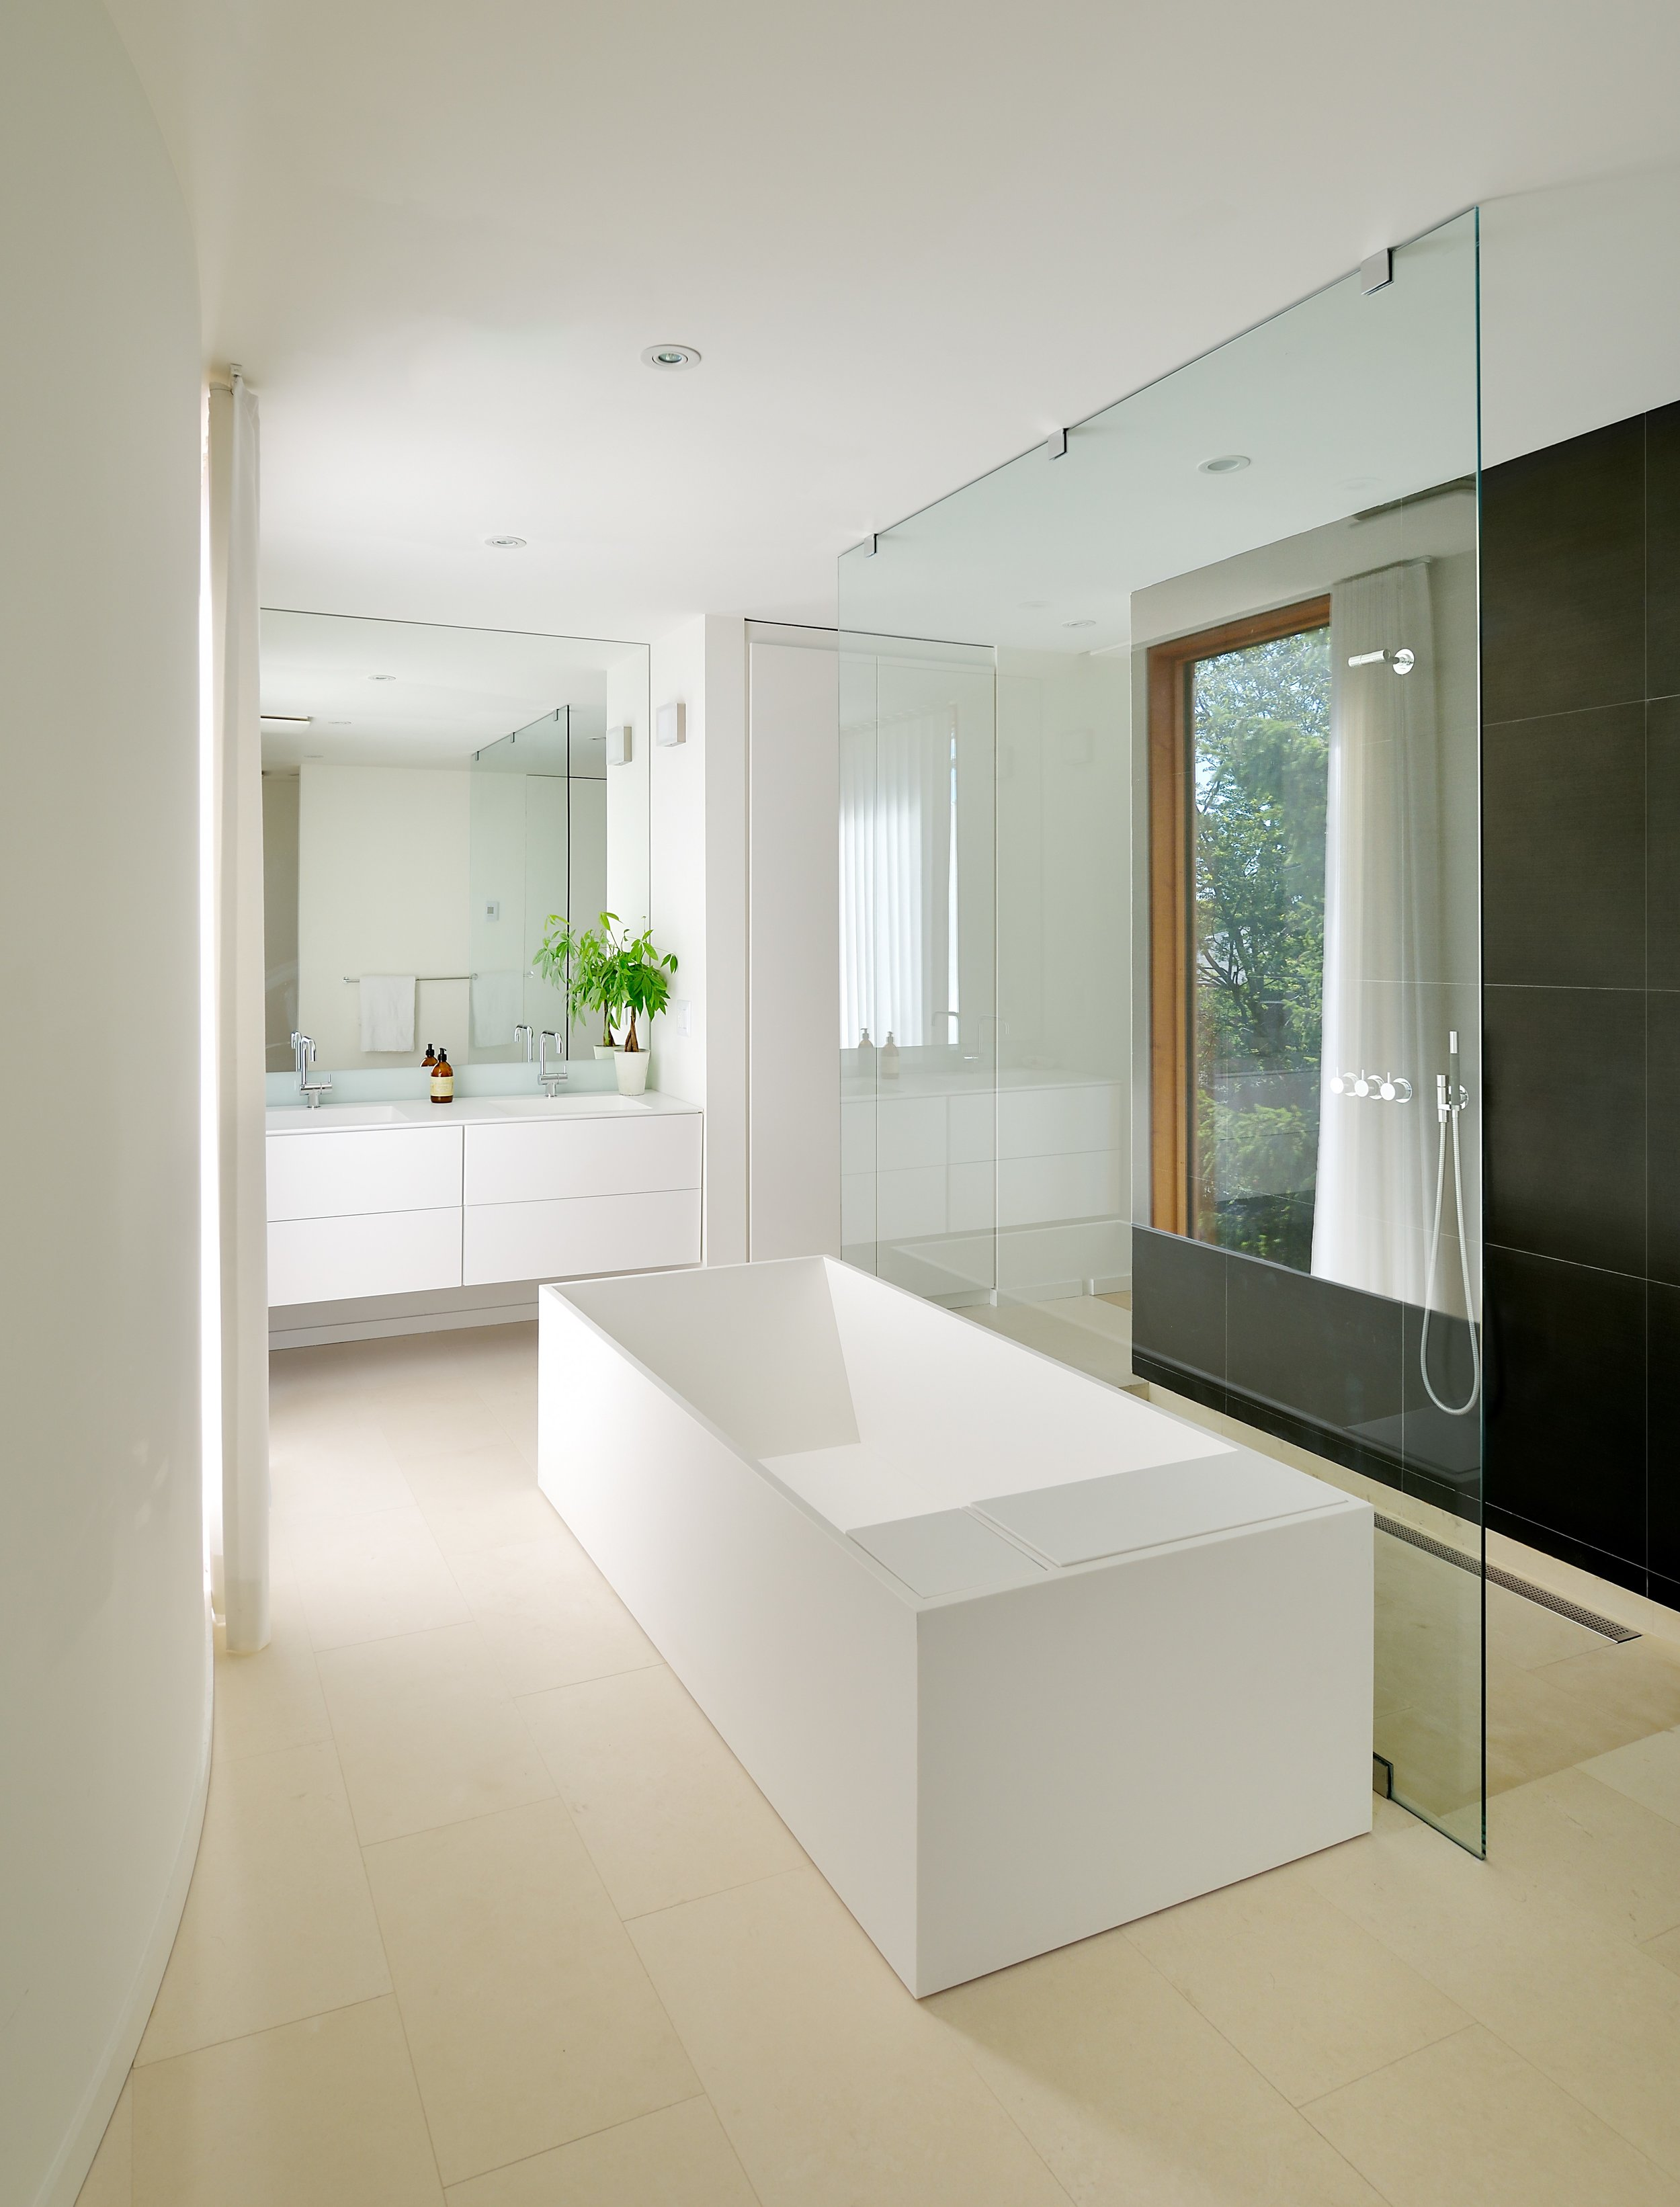 Blantyre House Interior Bathroom